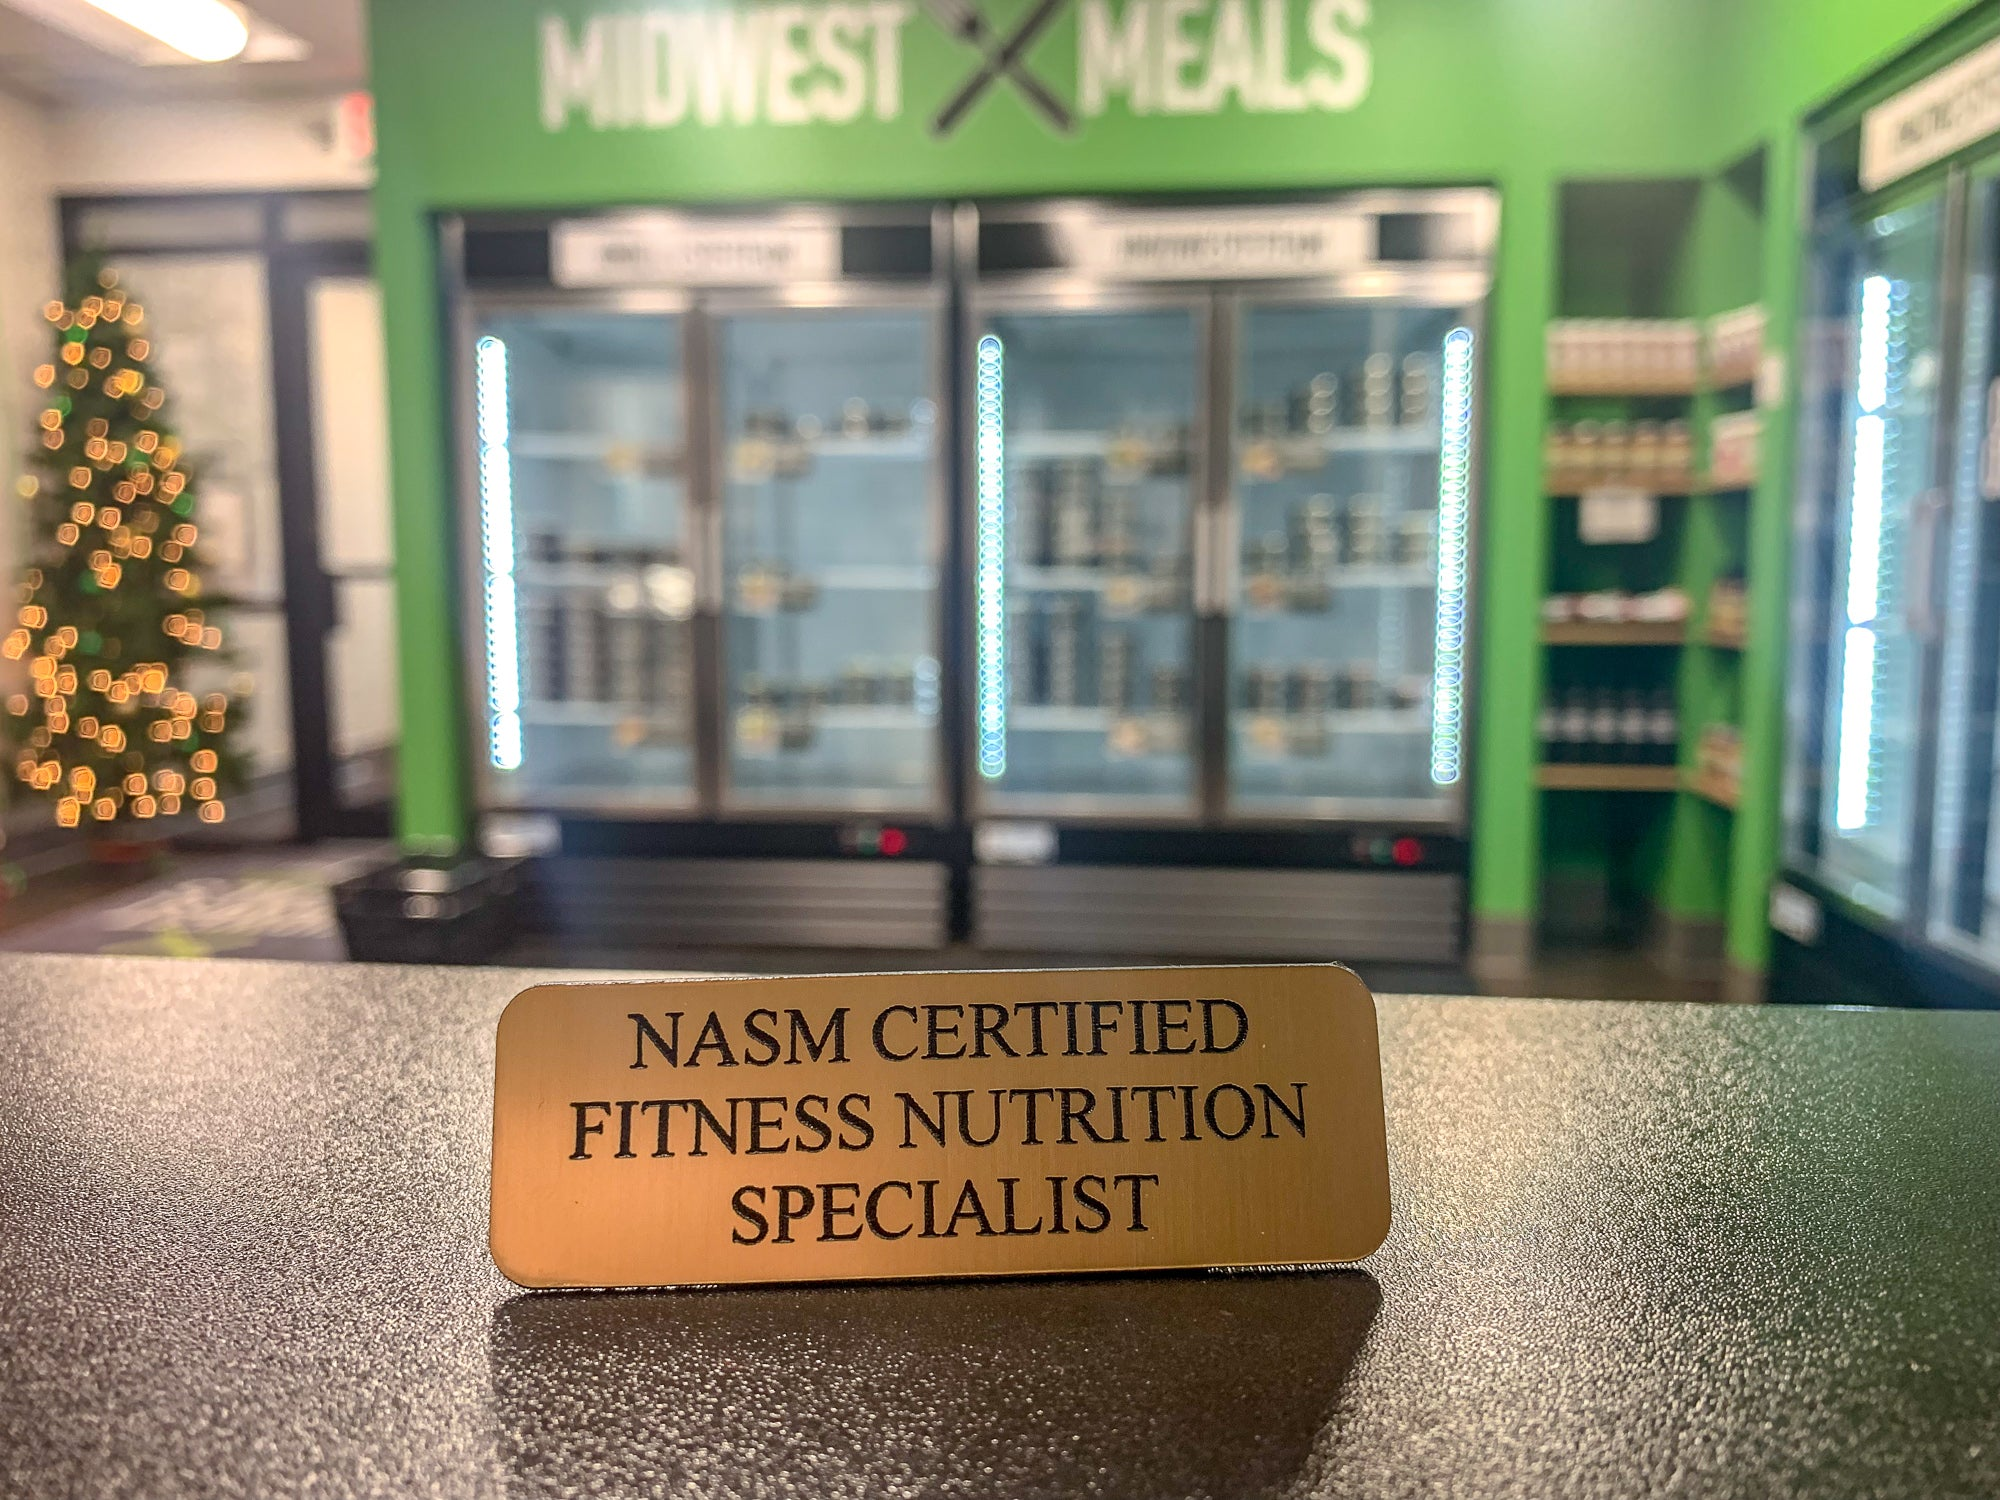 Nasm Certified Fitness Nutrition Specialist Midwest Meals